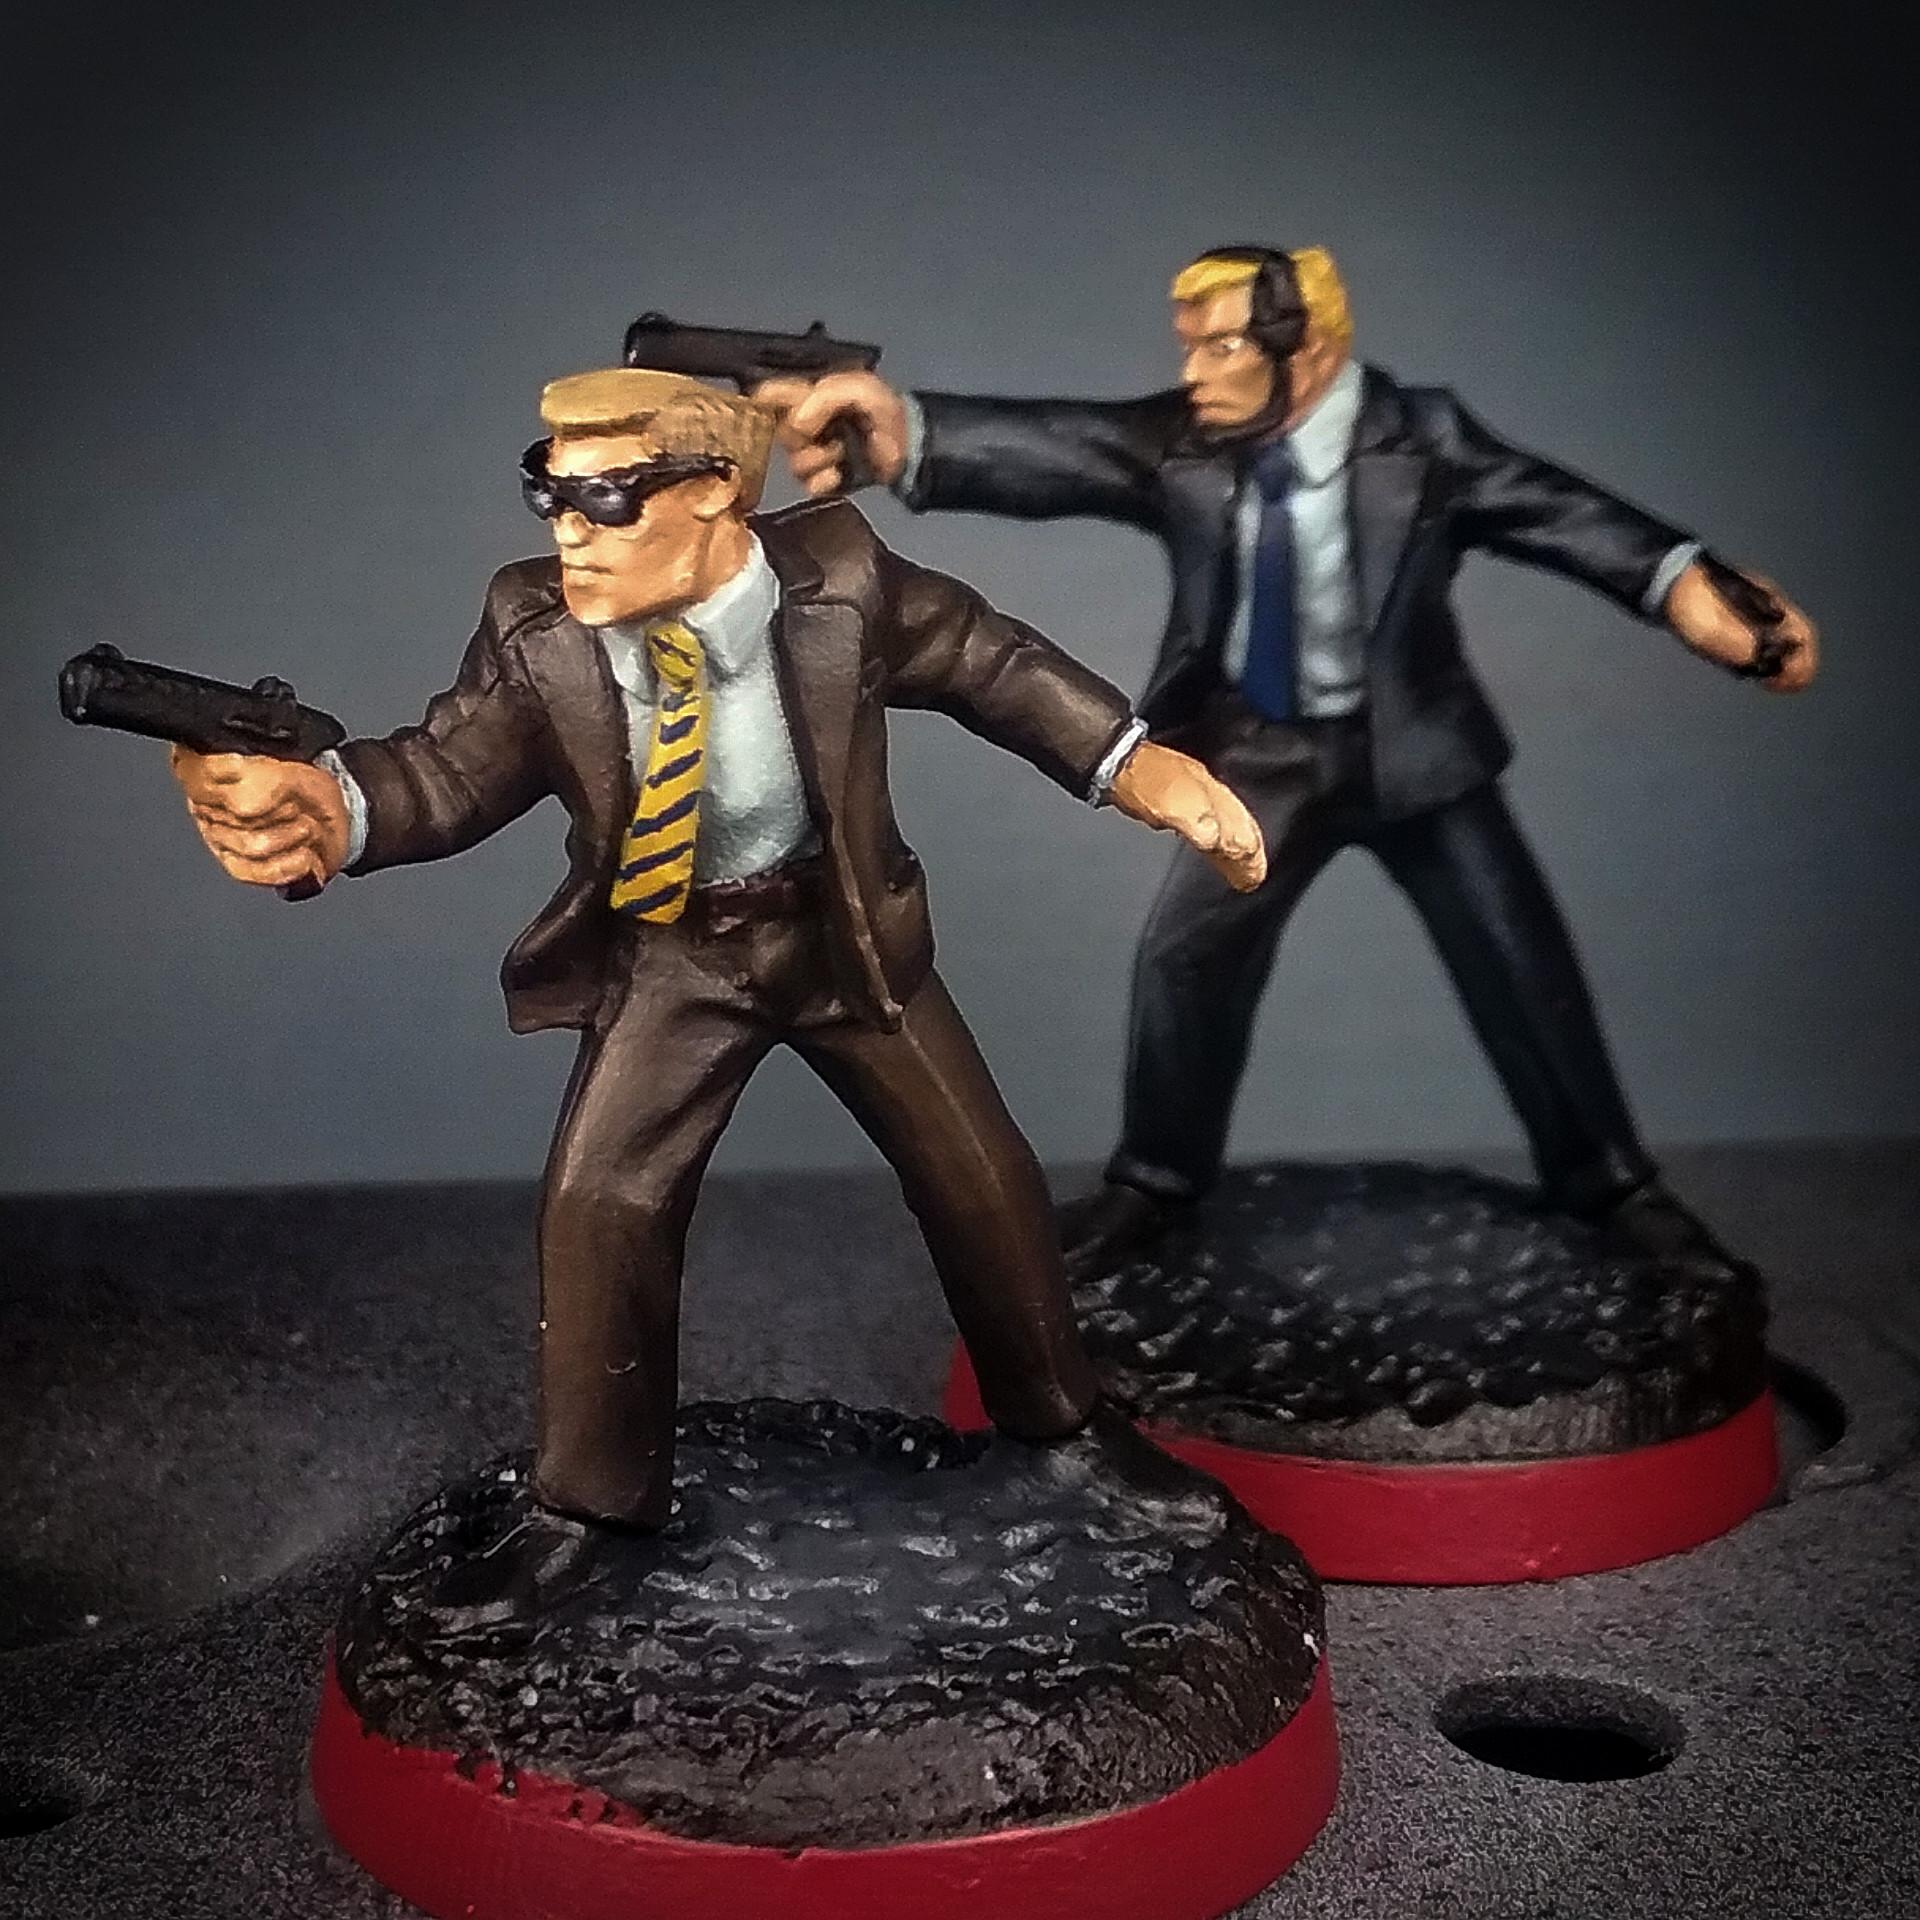 28mm Battlestar Galactica Miniatures, 28mm Battlestar Galactica Security Agents, 28mm Presidential Security Service, Battlestar Galactica, Battlestar Galactica Miniatures, Em4 Miniatures, Future Skirmish, Moonraker Miniatures, Suits Miniatures, Suits With Hand Gun